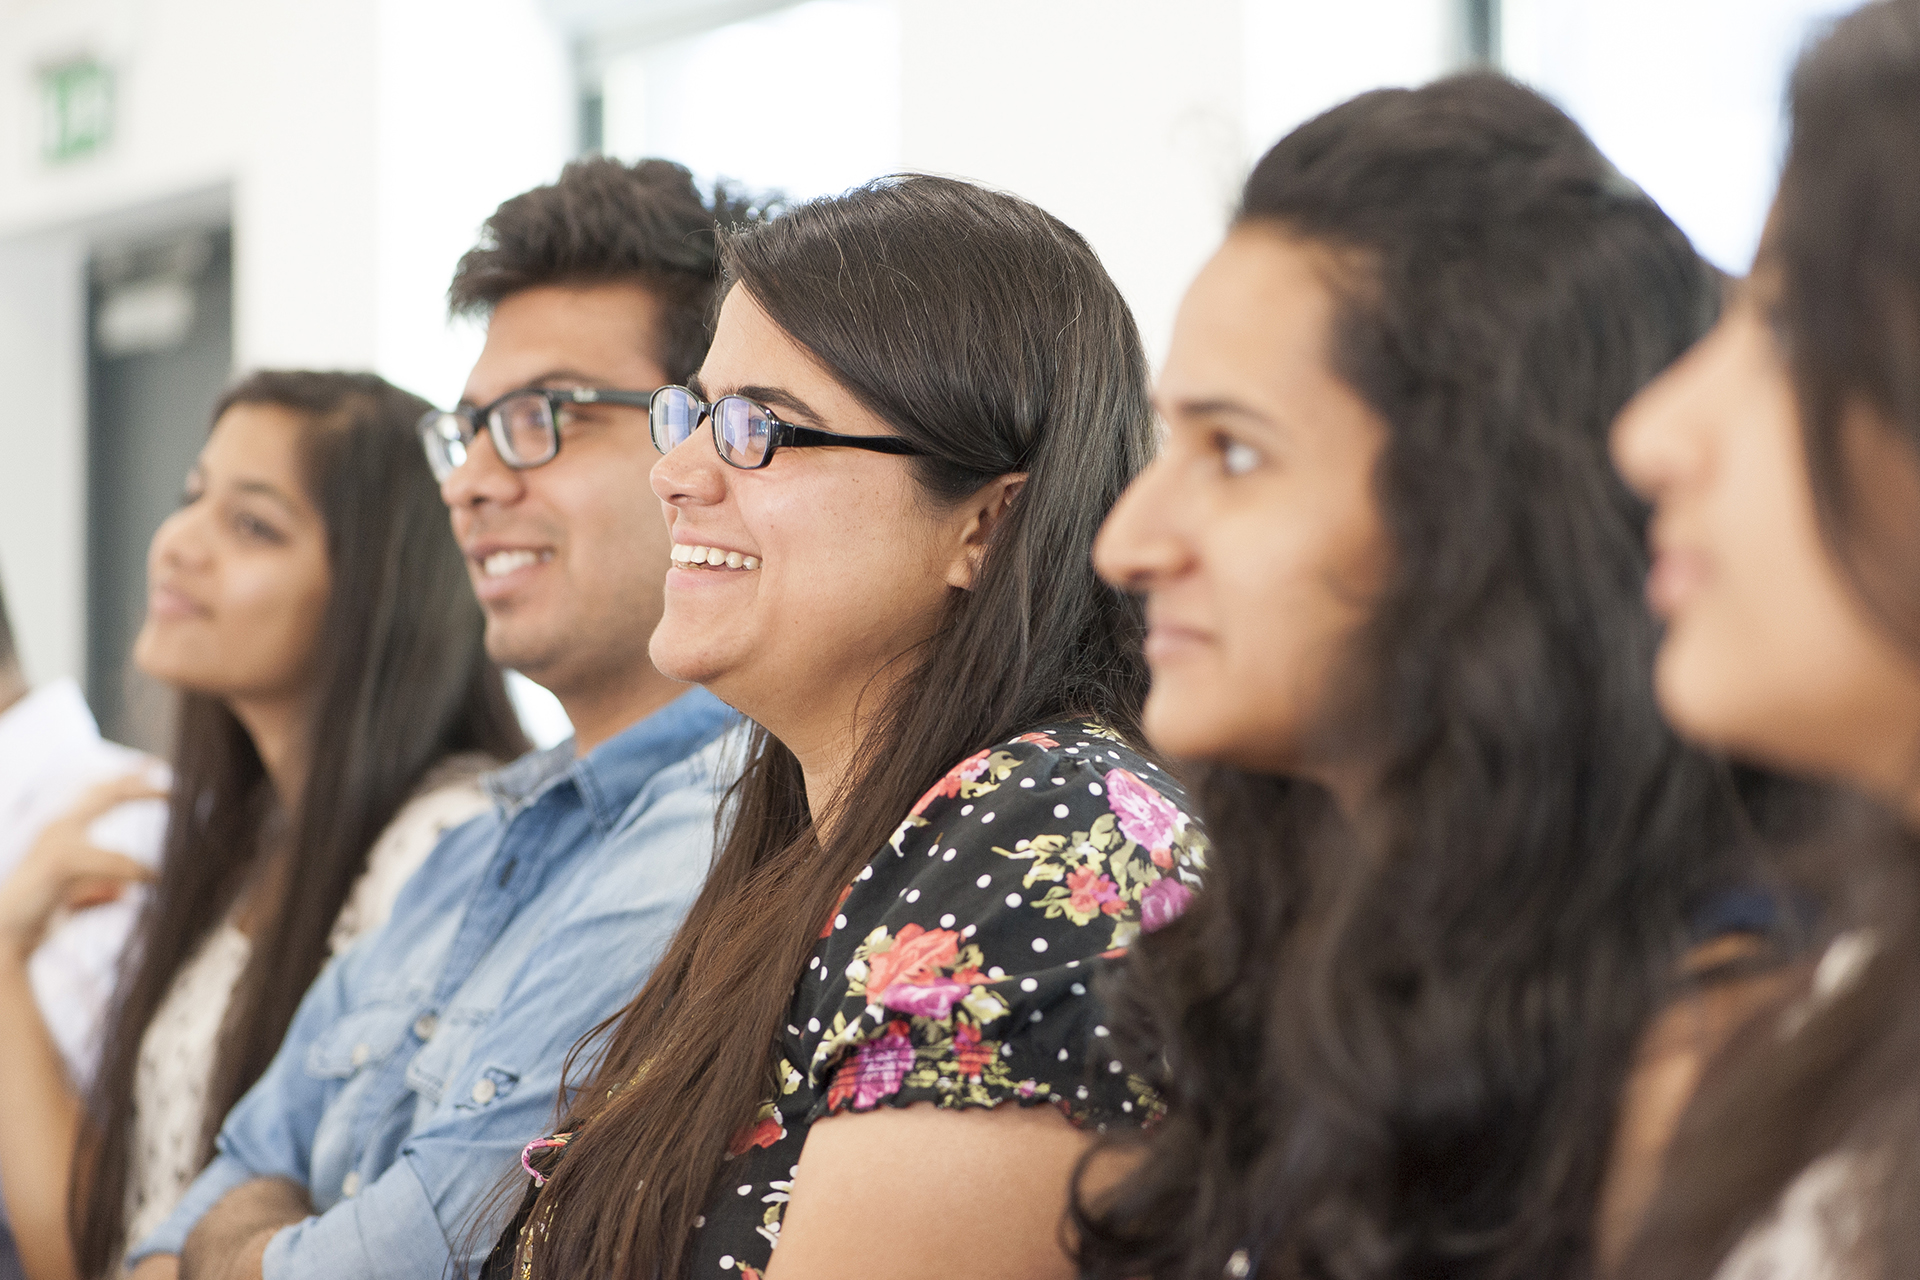 Students smiling during lecture